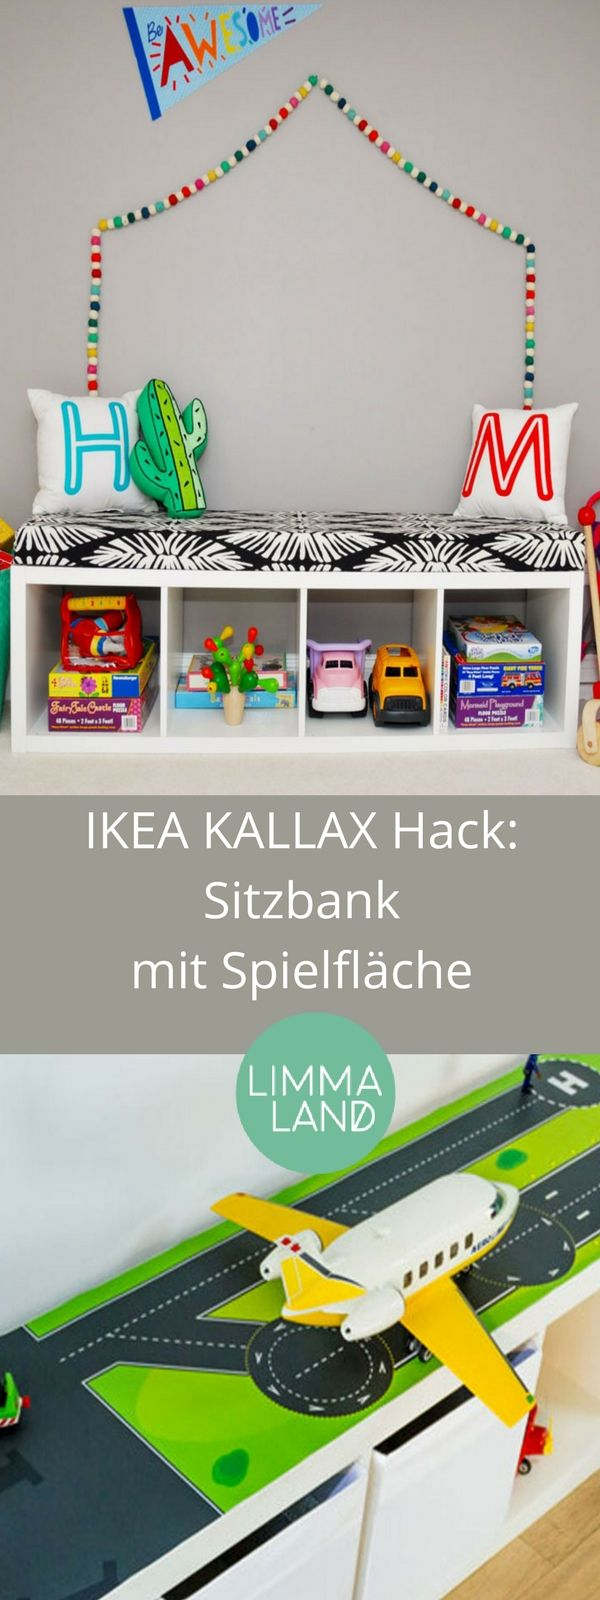 ikea sitzbank f rs kinderzimmer spieluntergrund. Black Bedroom Furniture Sets. Home Design Ideas